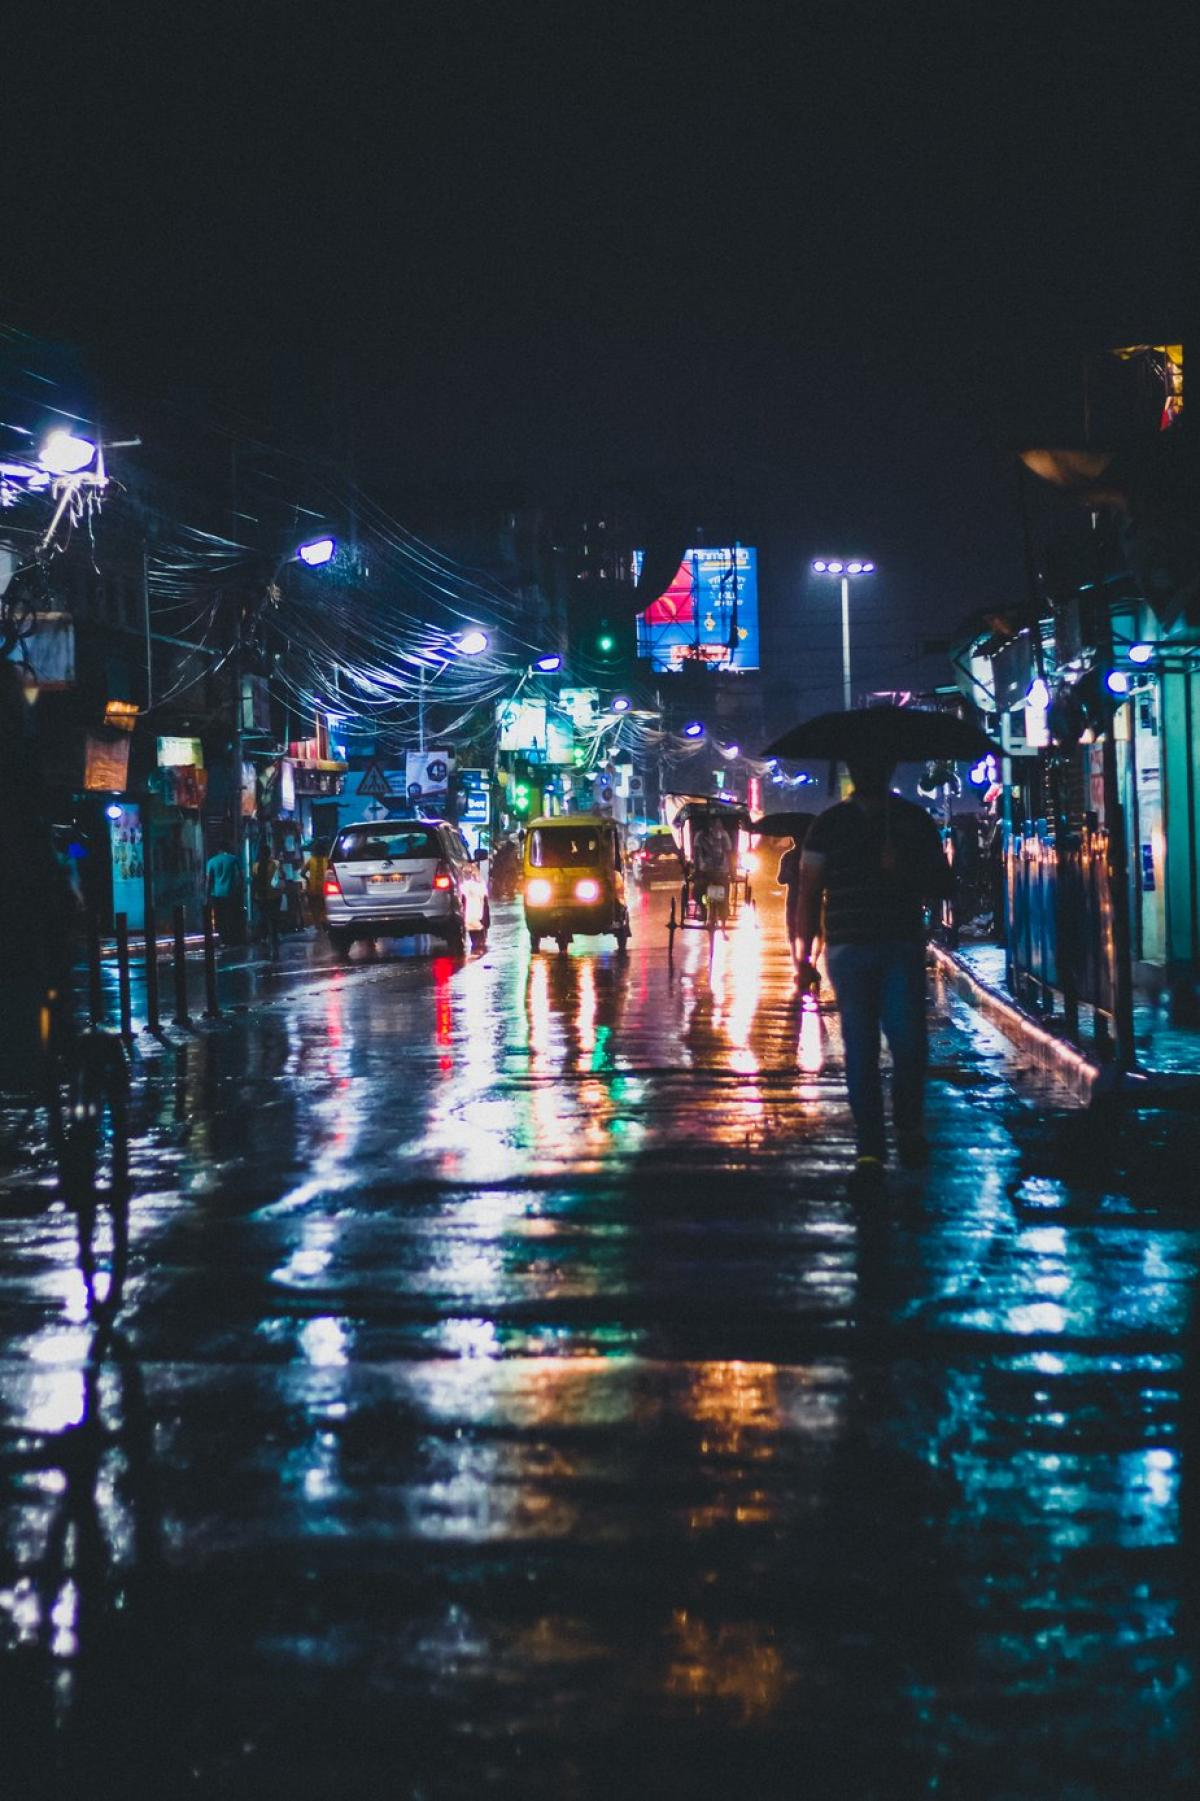 Street Lights Reflect On Wet City Streets In India #419434